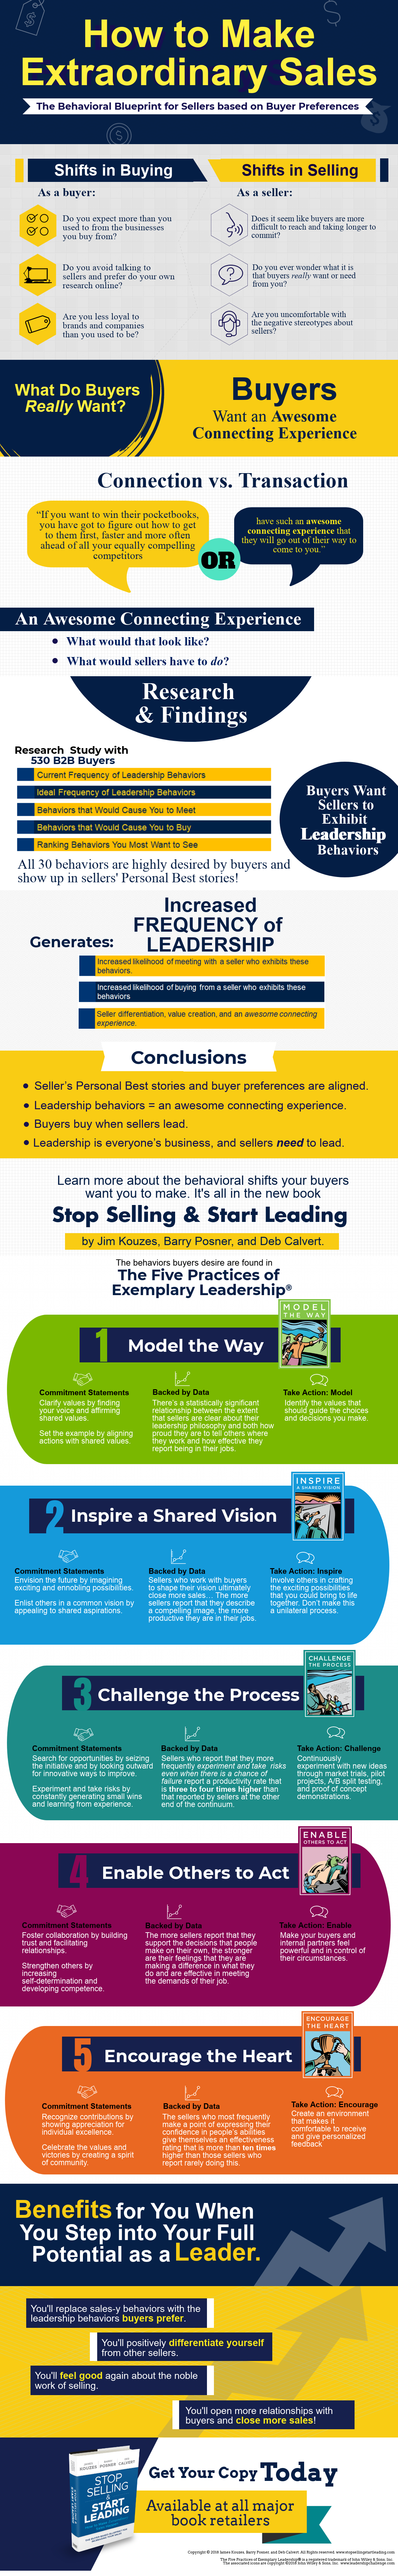 stop selling & start leading infographic sales books